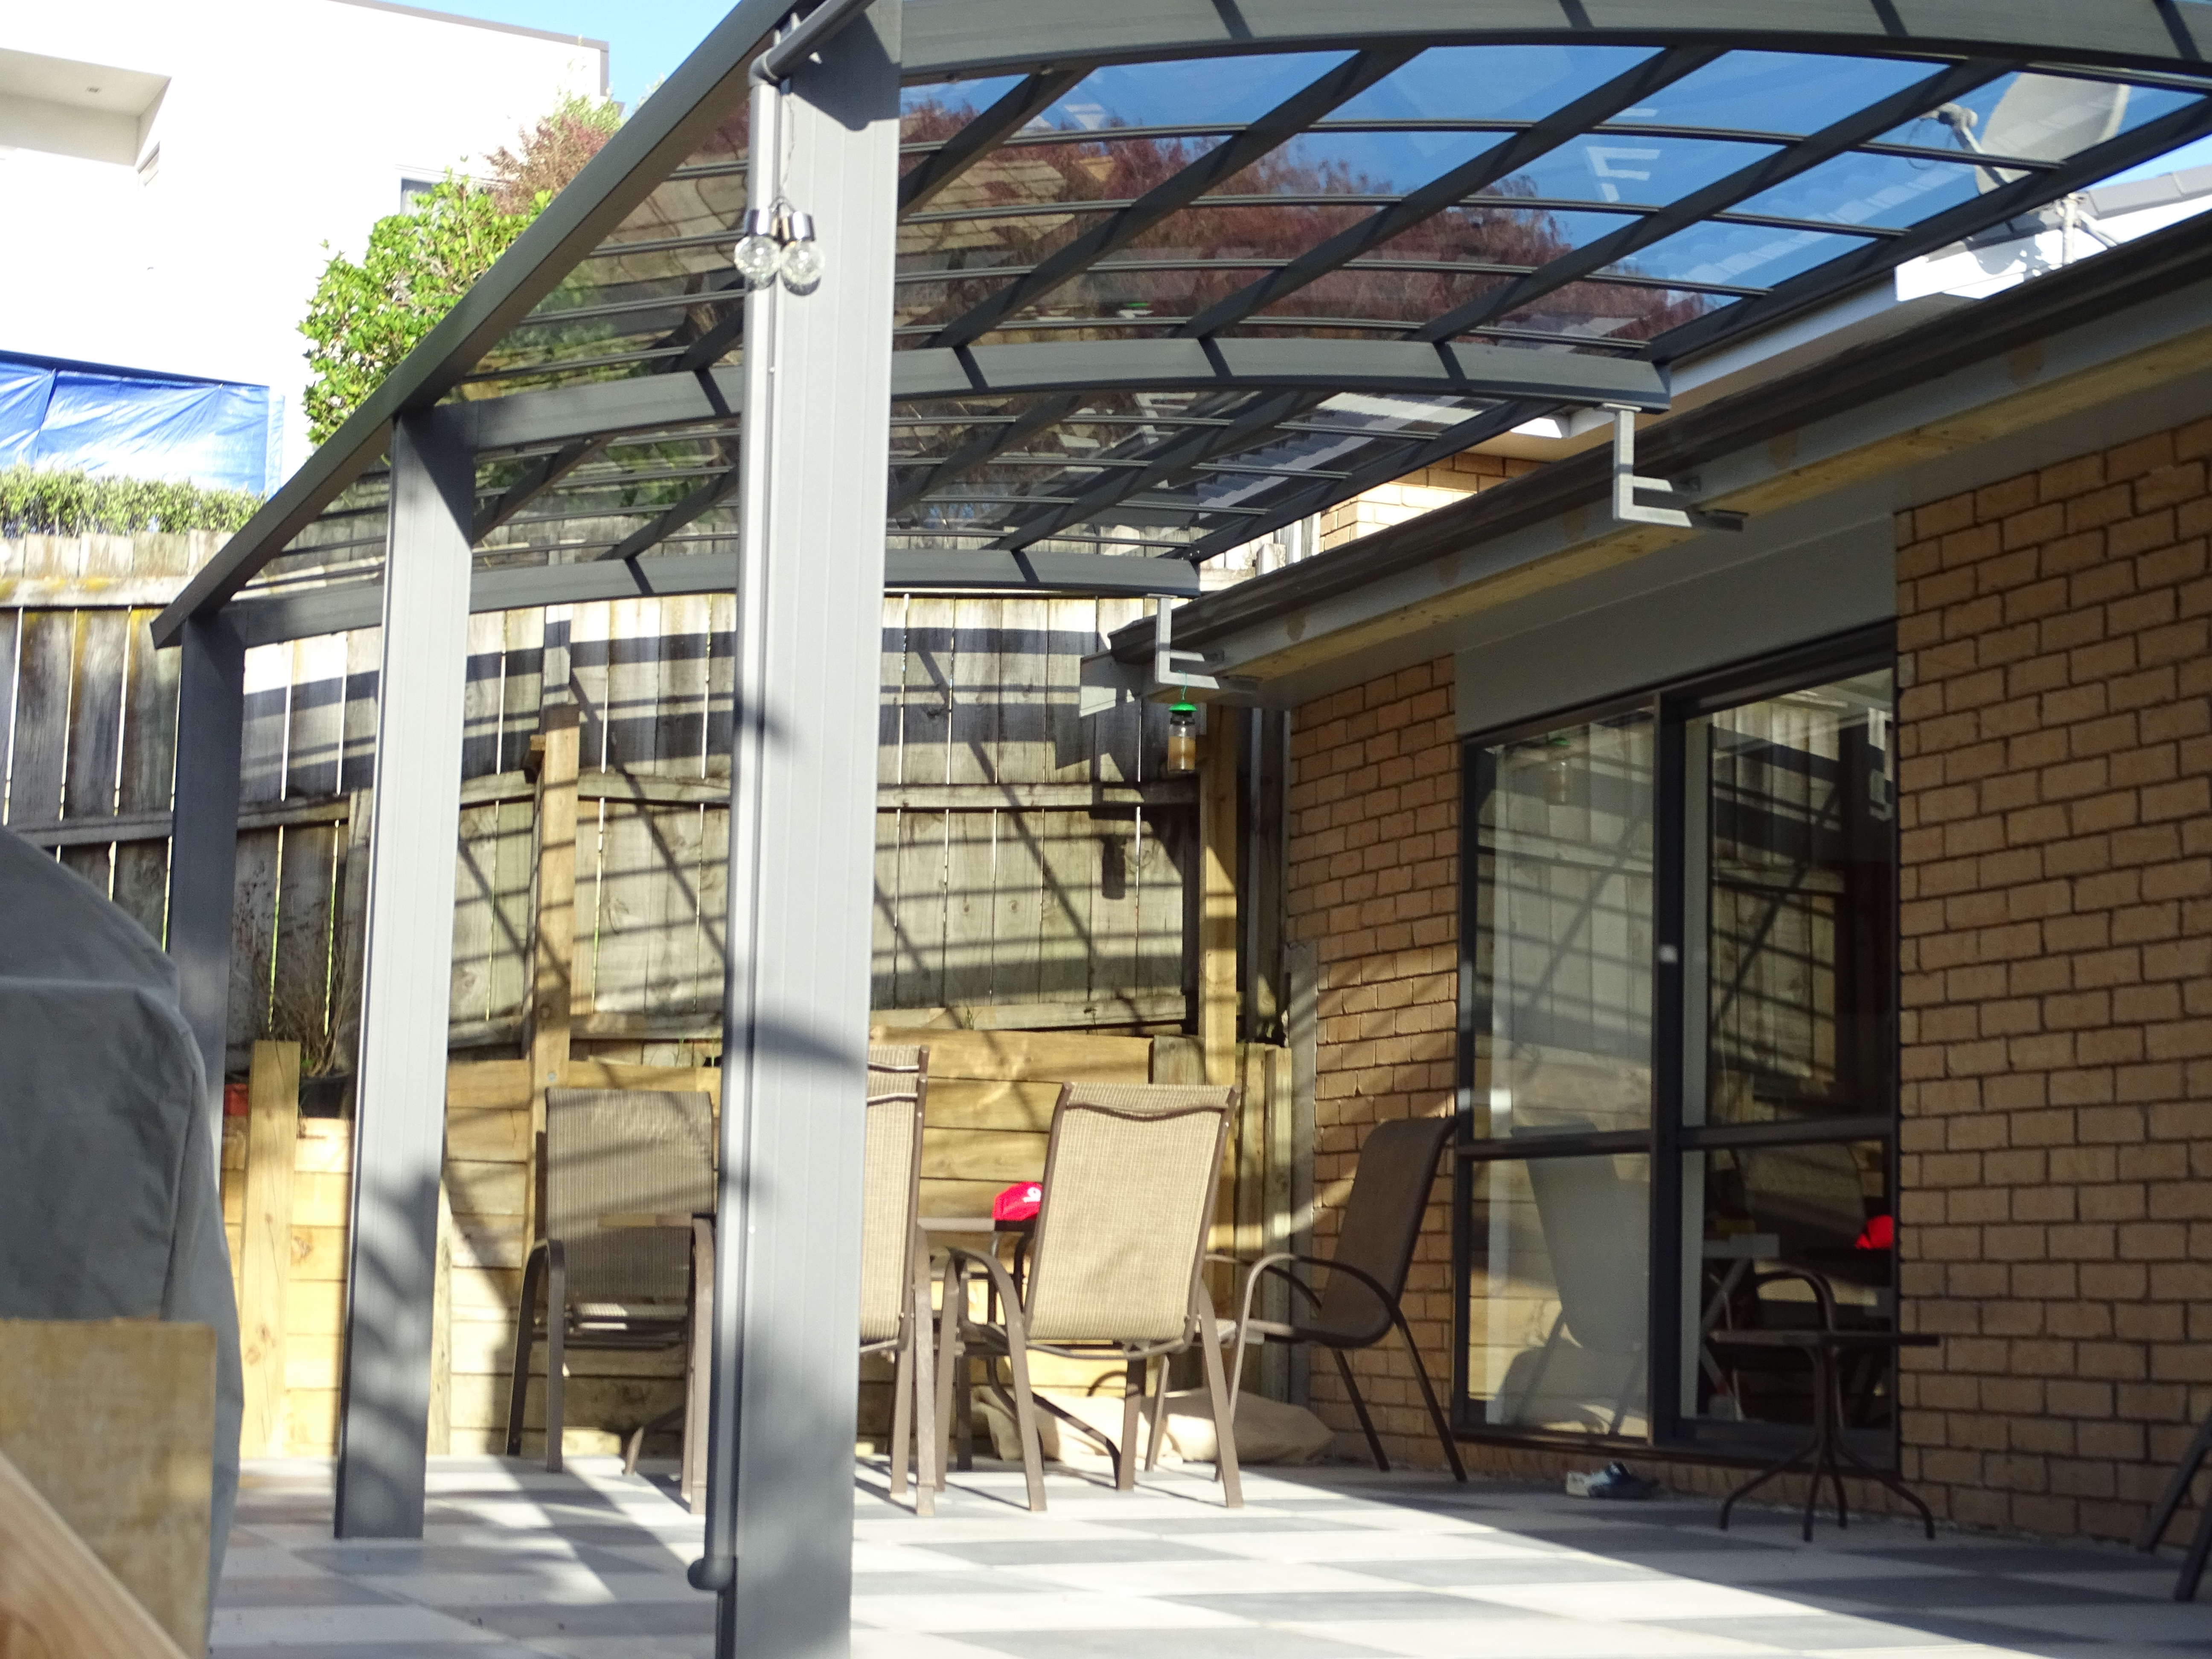 Feedback From Aluminum Carport Canopy Client